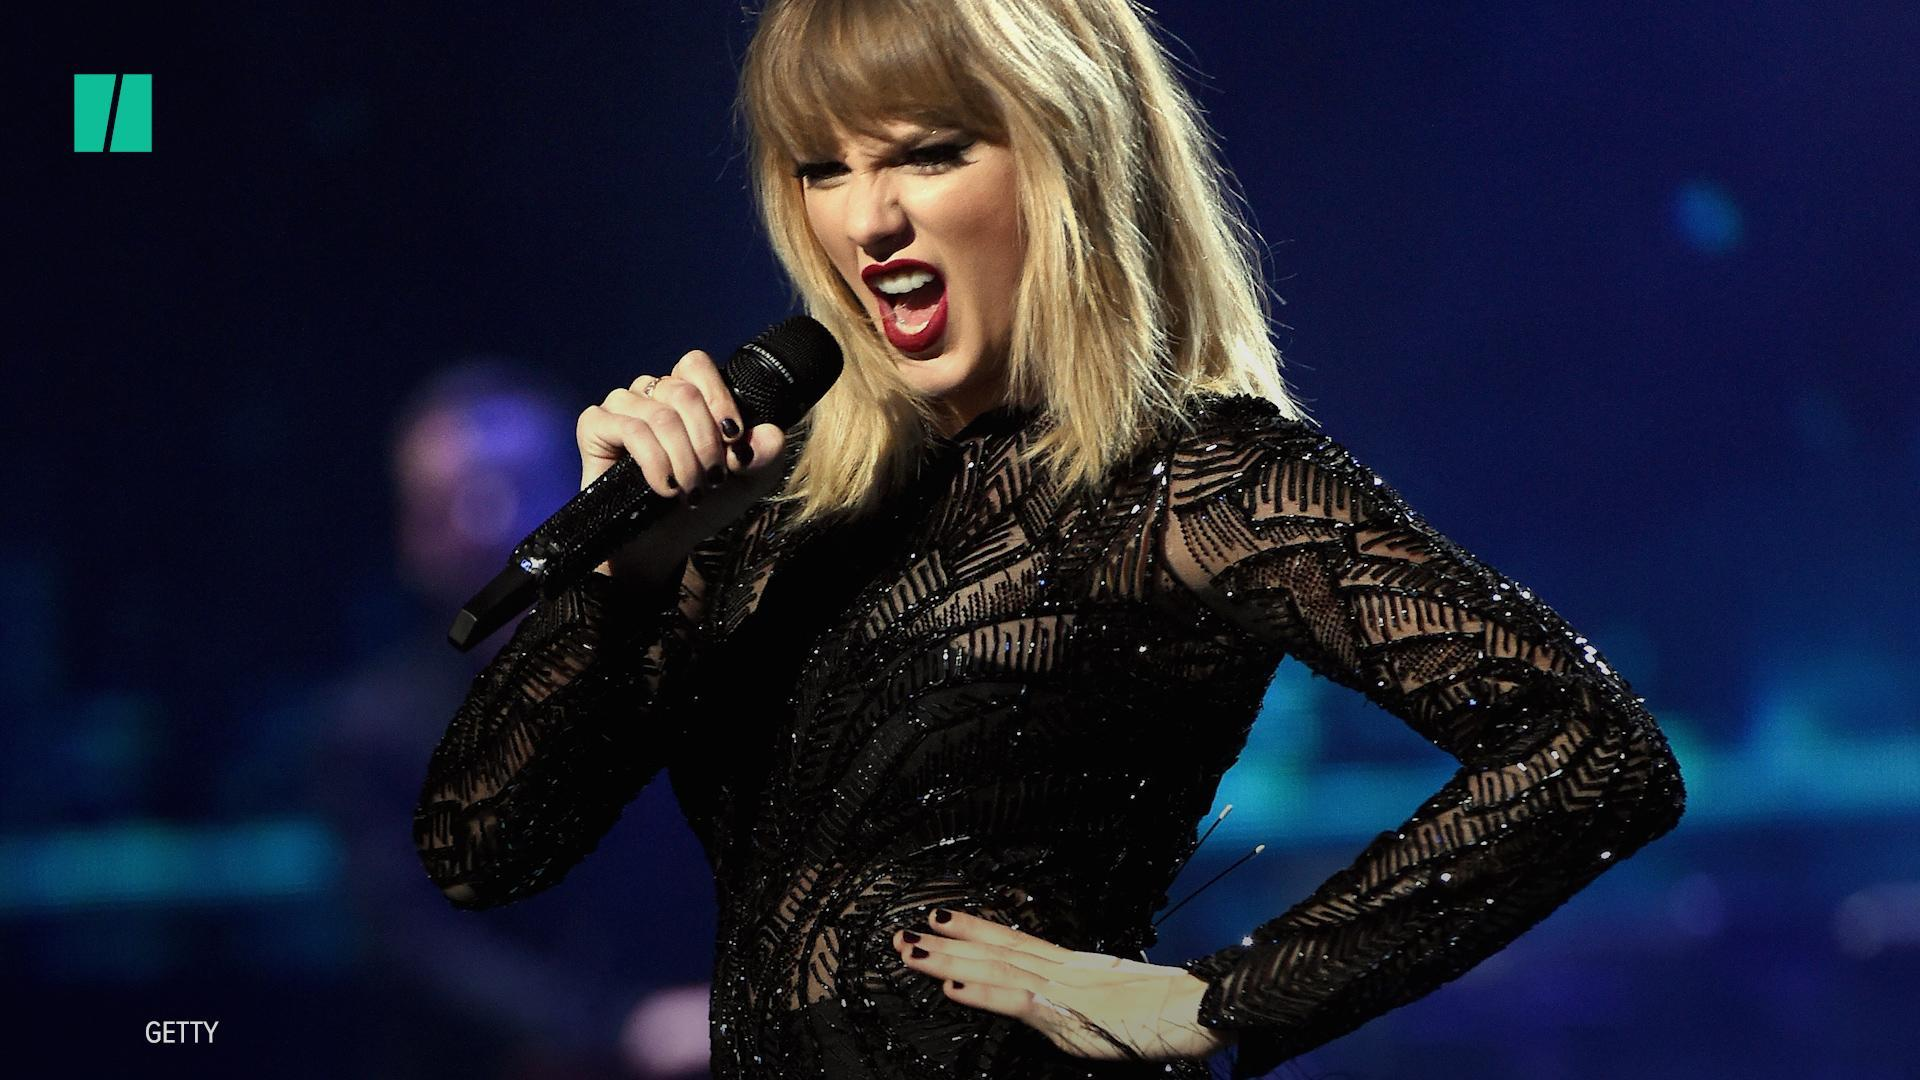 Mike Huckabee Dismisses Taylor Swift's Political Endorsement Because '13-Year-Old Girls' Can't Vote